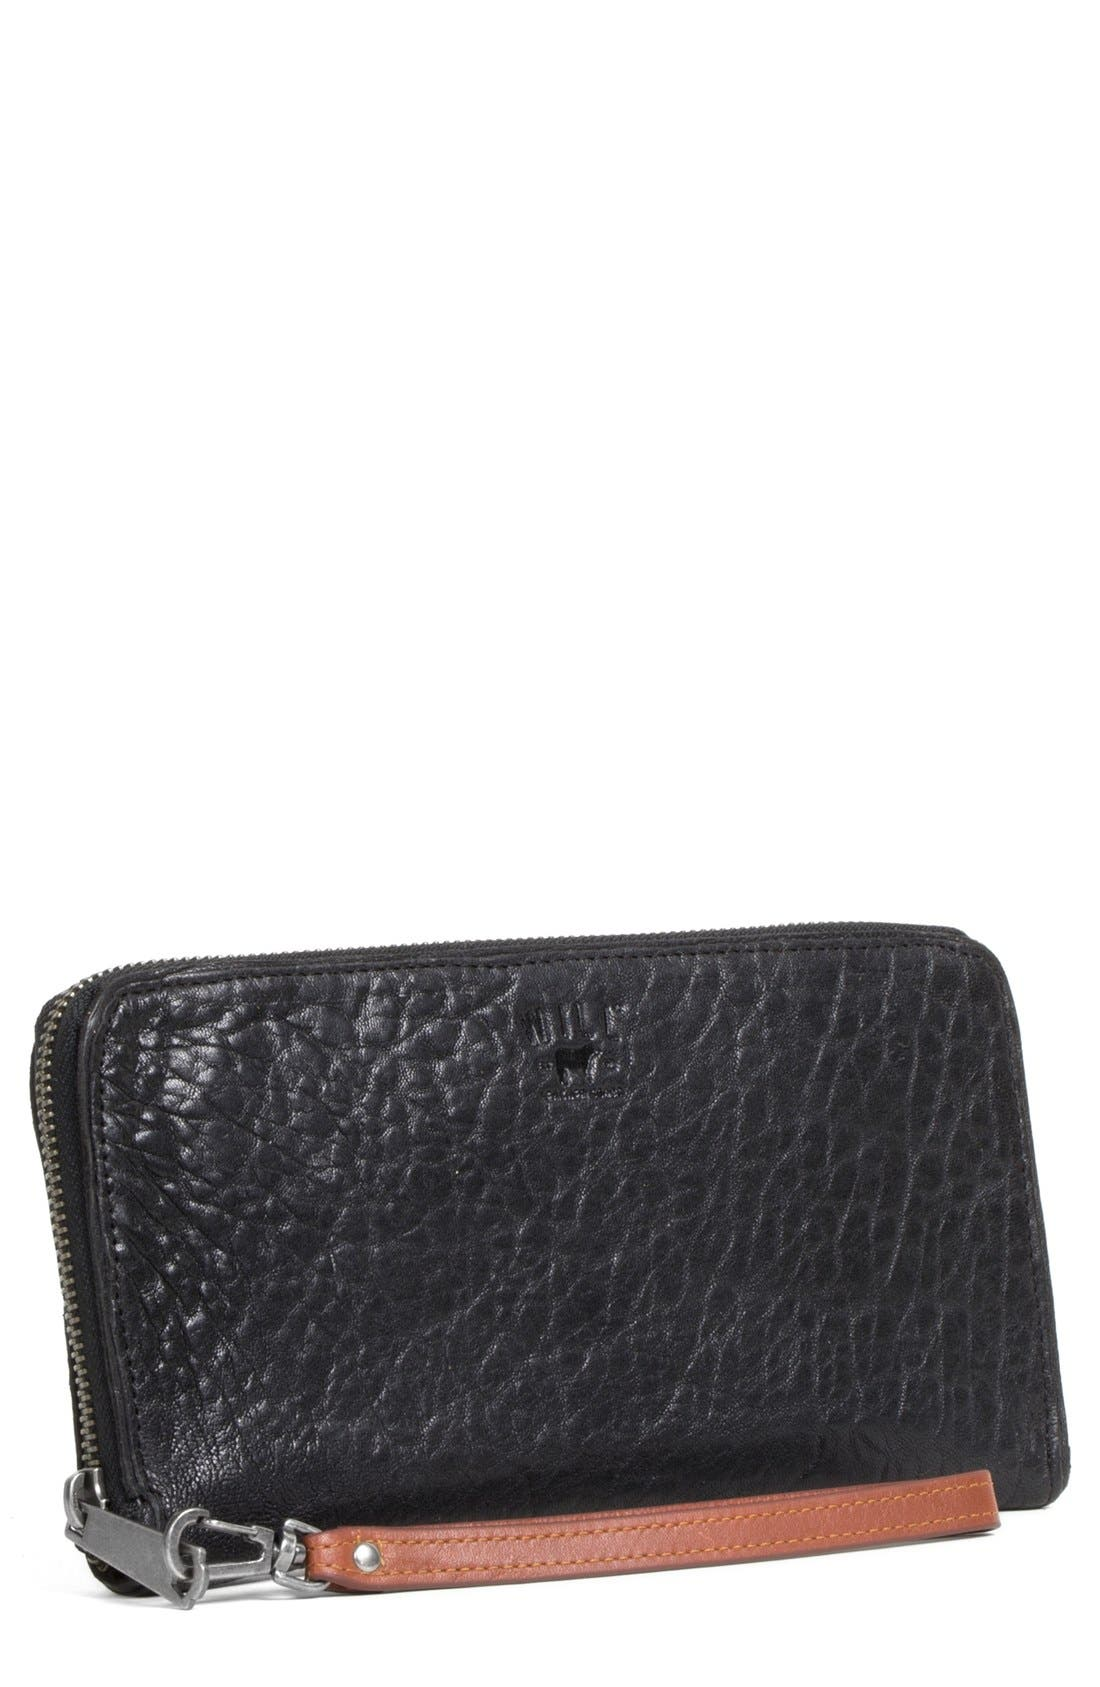 'Imogen' Washed Italian Lambskin Leather Checkbook Clutch,                             Main thumbnail 1, color,                             015